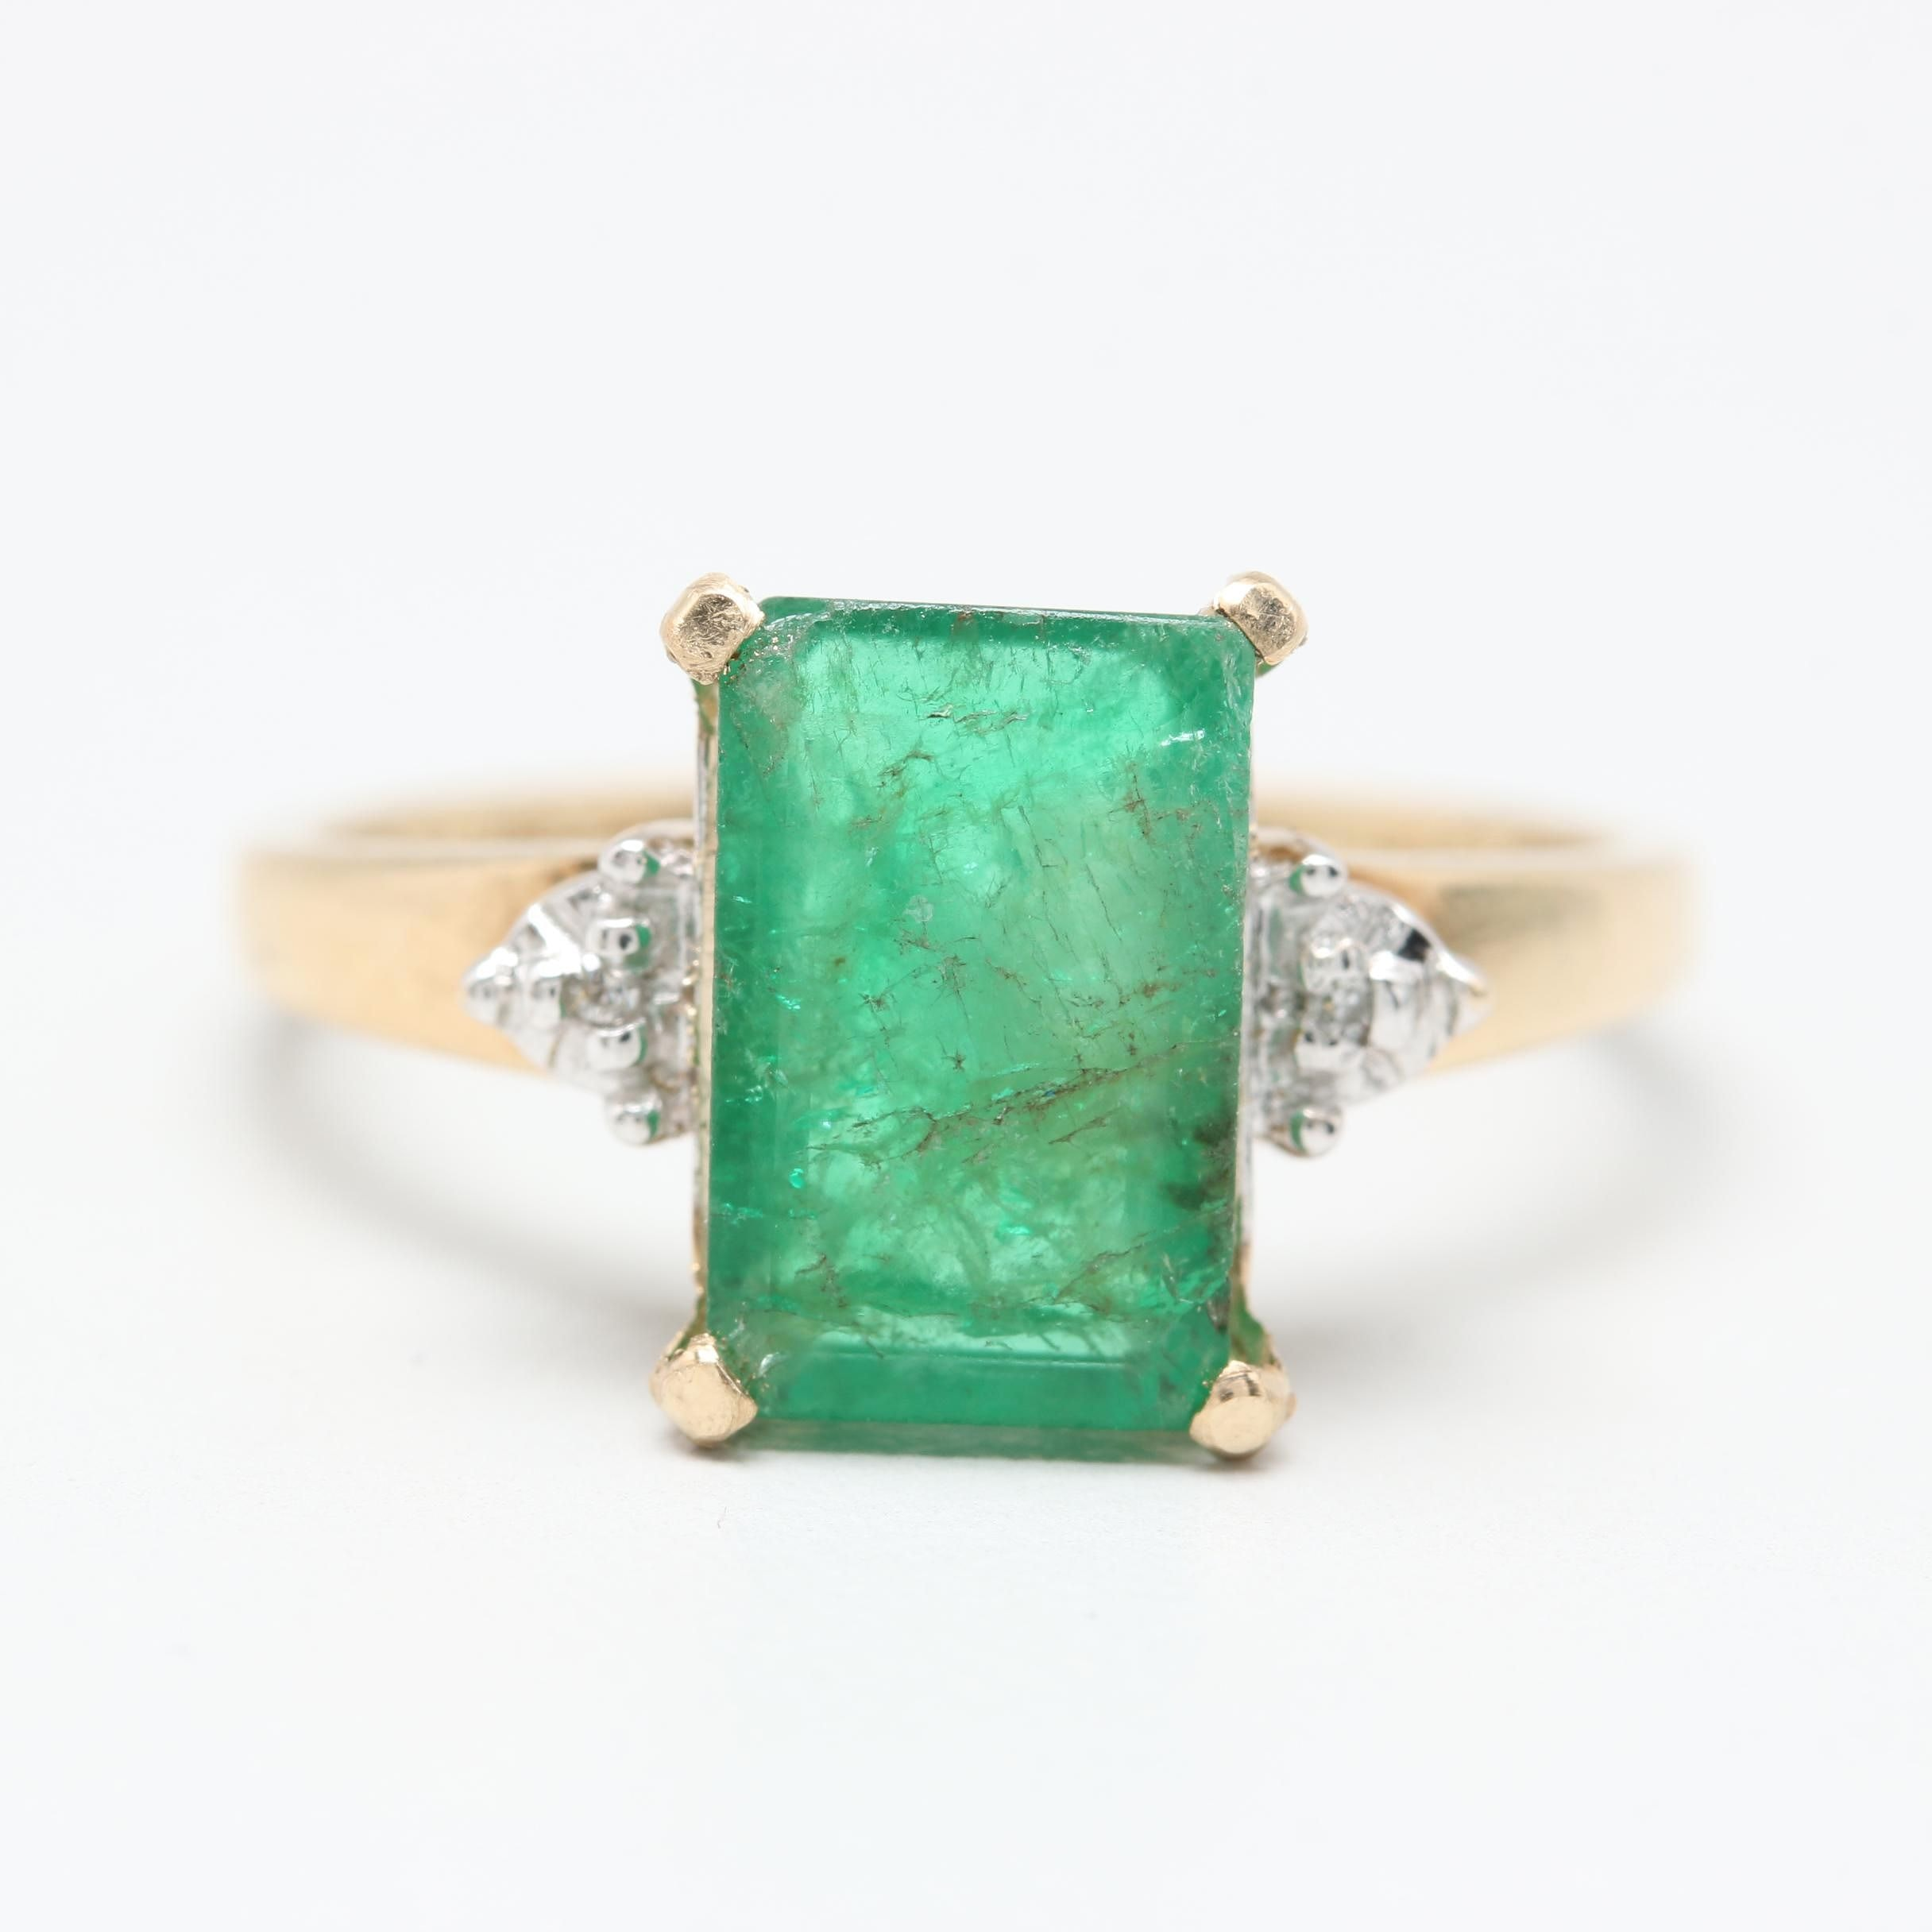 10K Yellow Gold 2.03 CT Emerald and Diamond Ring